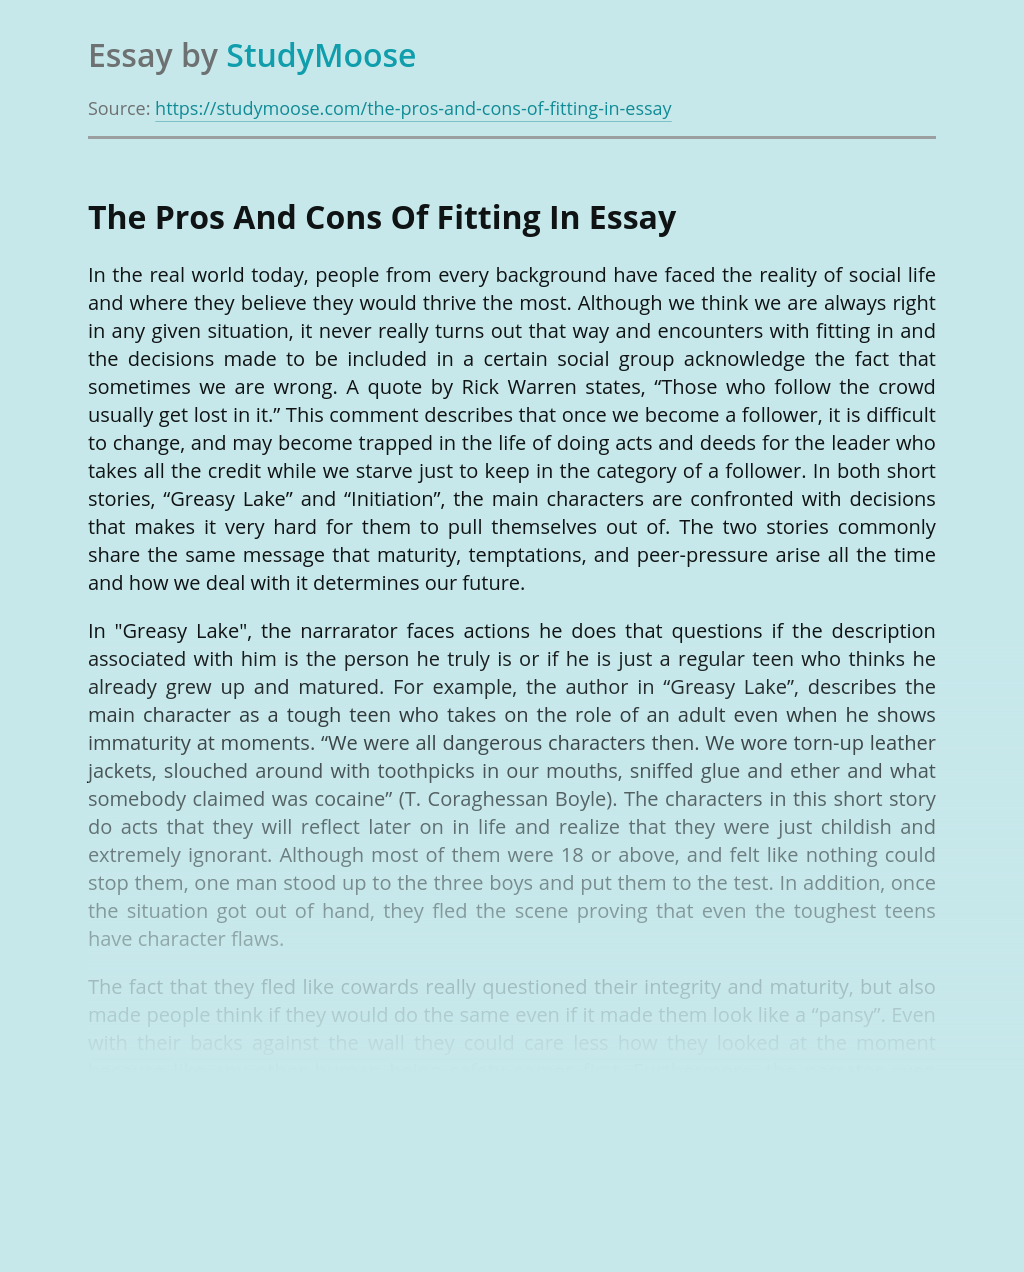 The Pros And Cons Of Fitting In